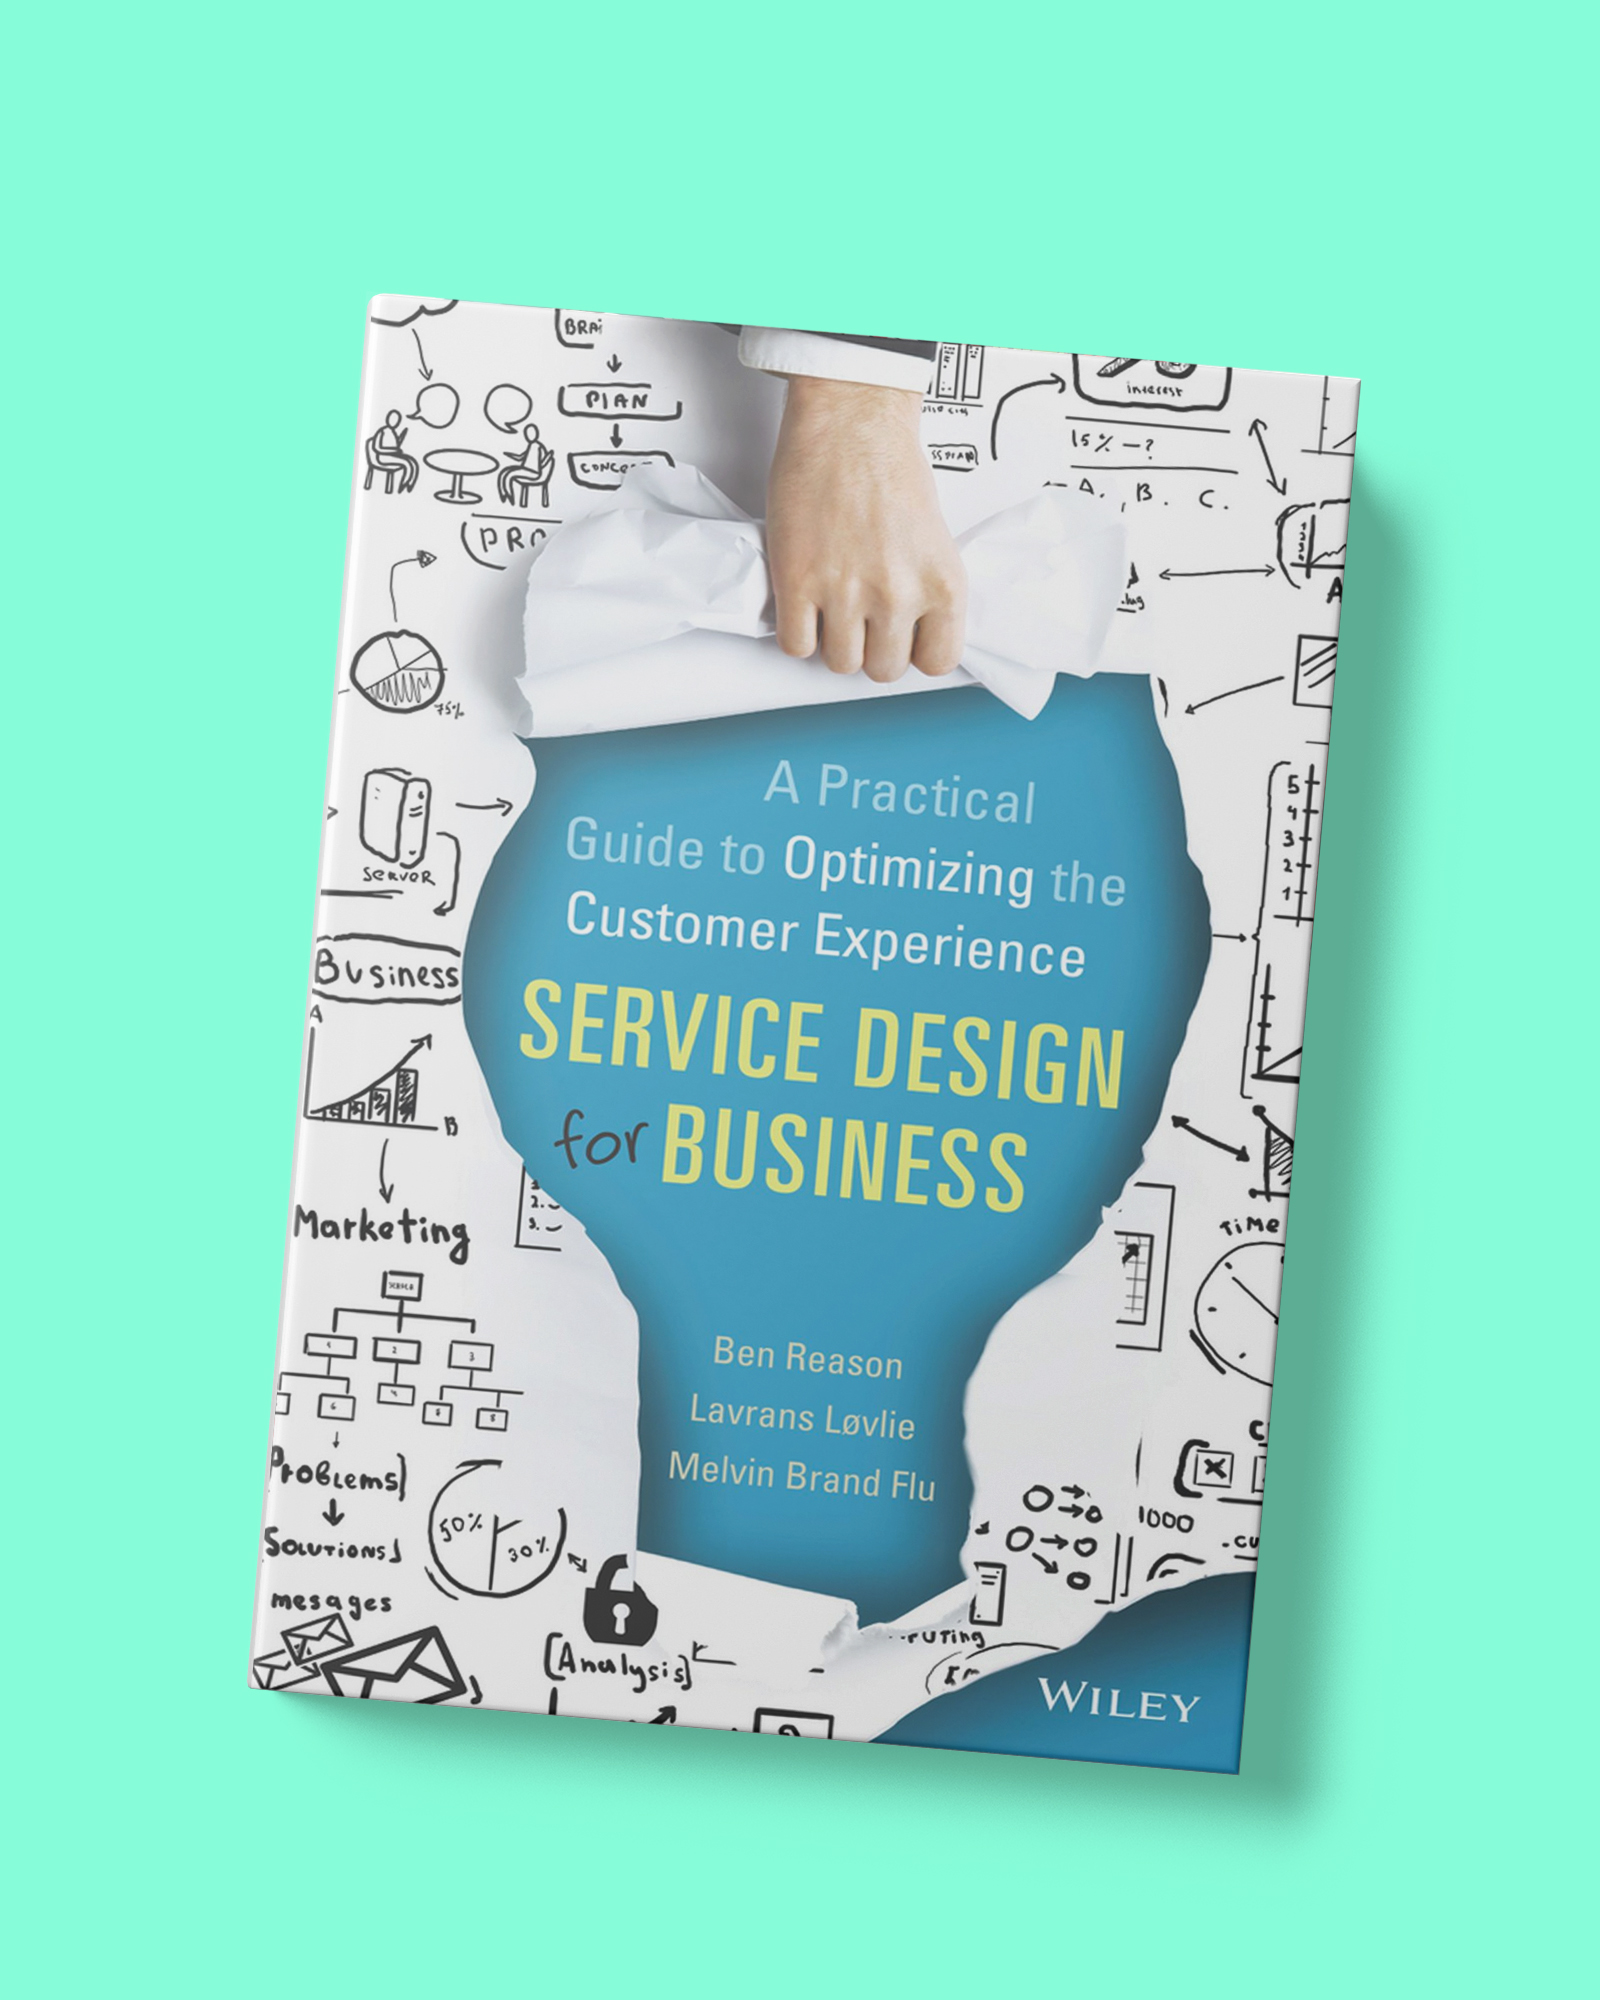 TDC | Behavior design - Book_Service Design for Business- A Practical Guide to Optimizing the Customer Experience